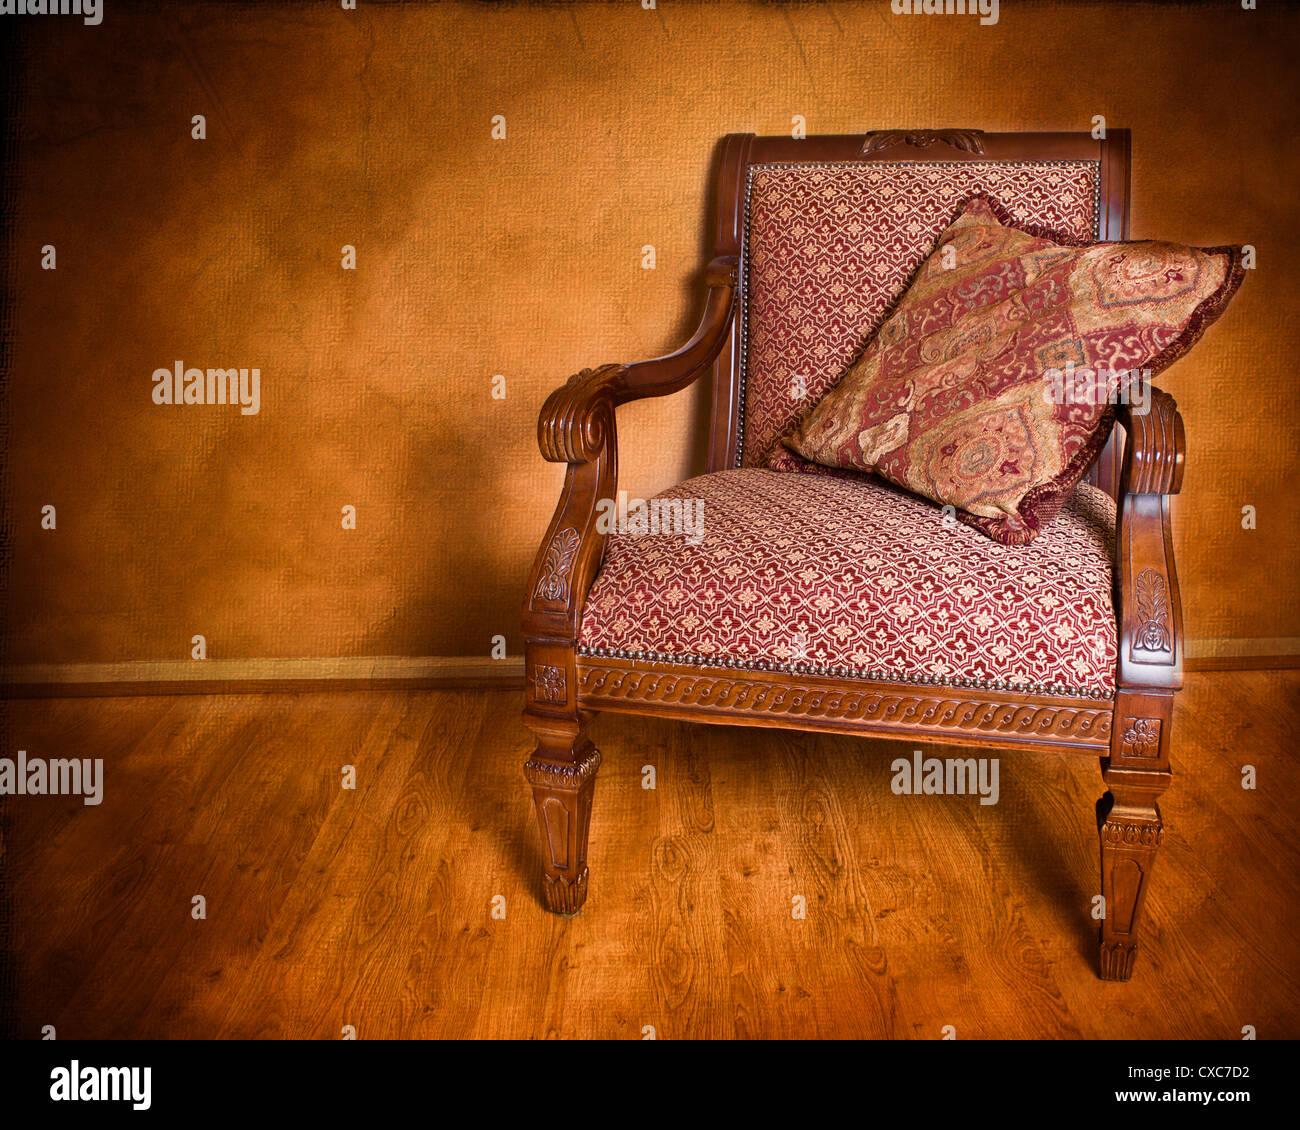 Vintage style armchair against textured wall - Stock Image